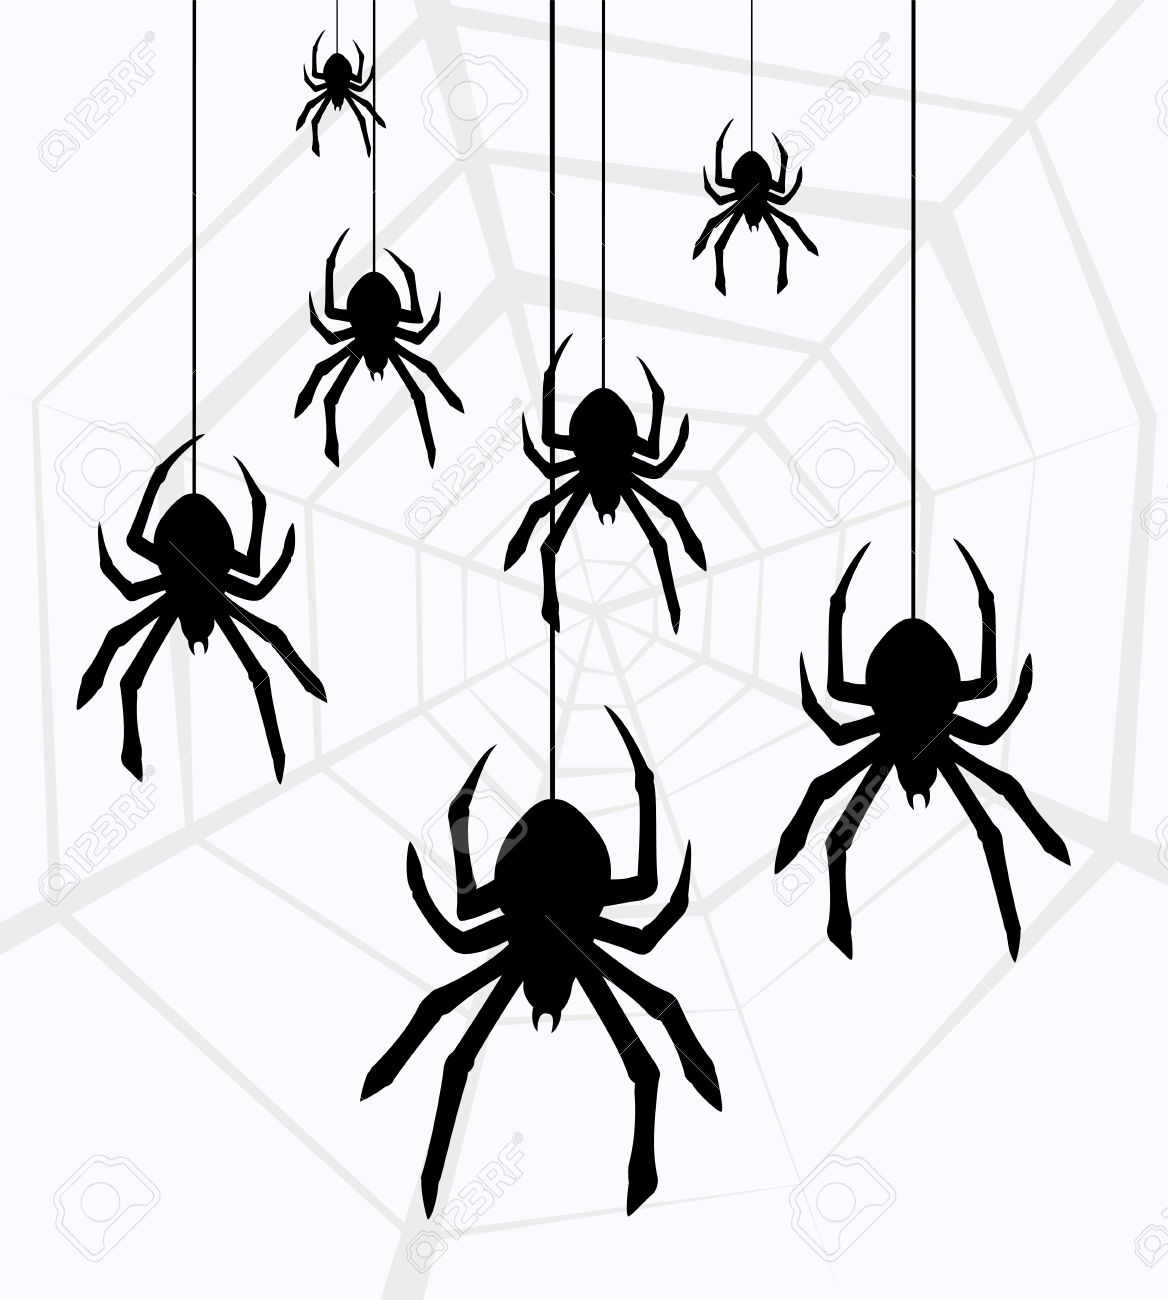 Spiderman clipart spider hanging White Spider pictures white clipart